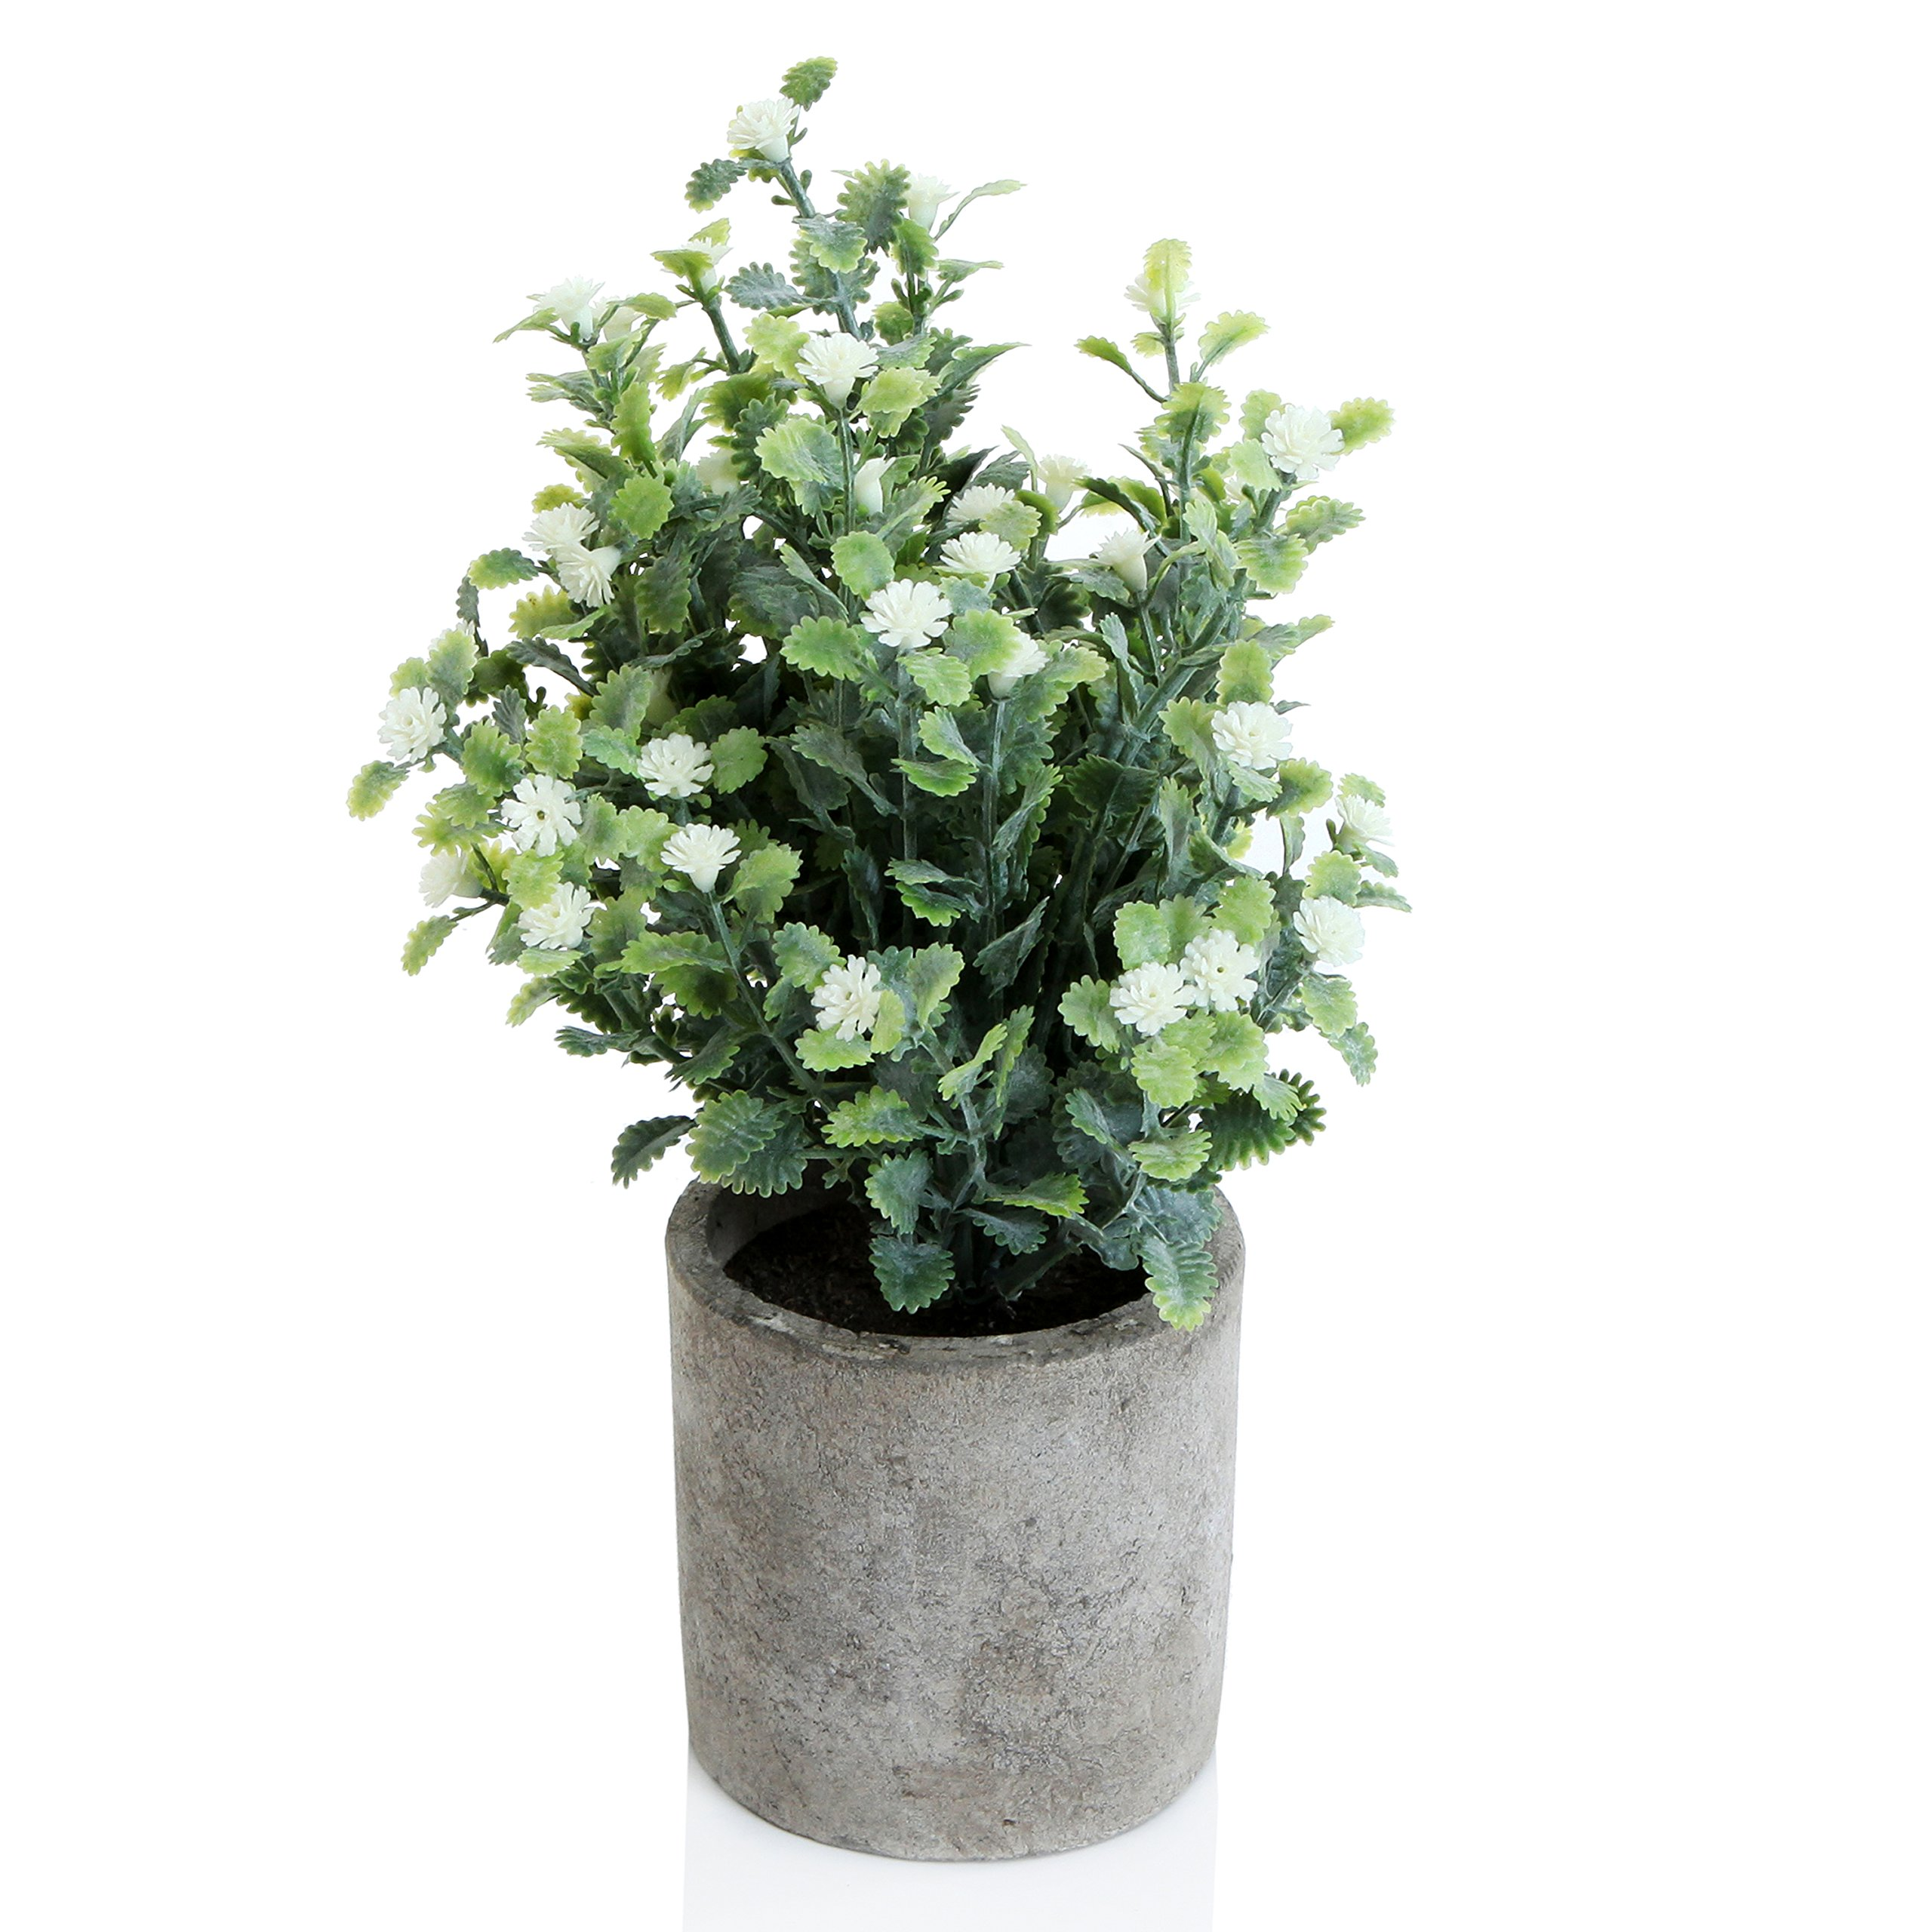 Decorative Small Artificial Potted Grass Pea White Flower Plants